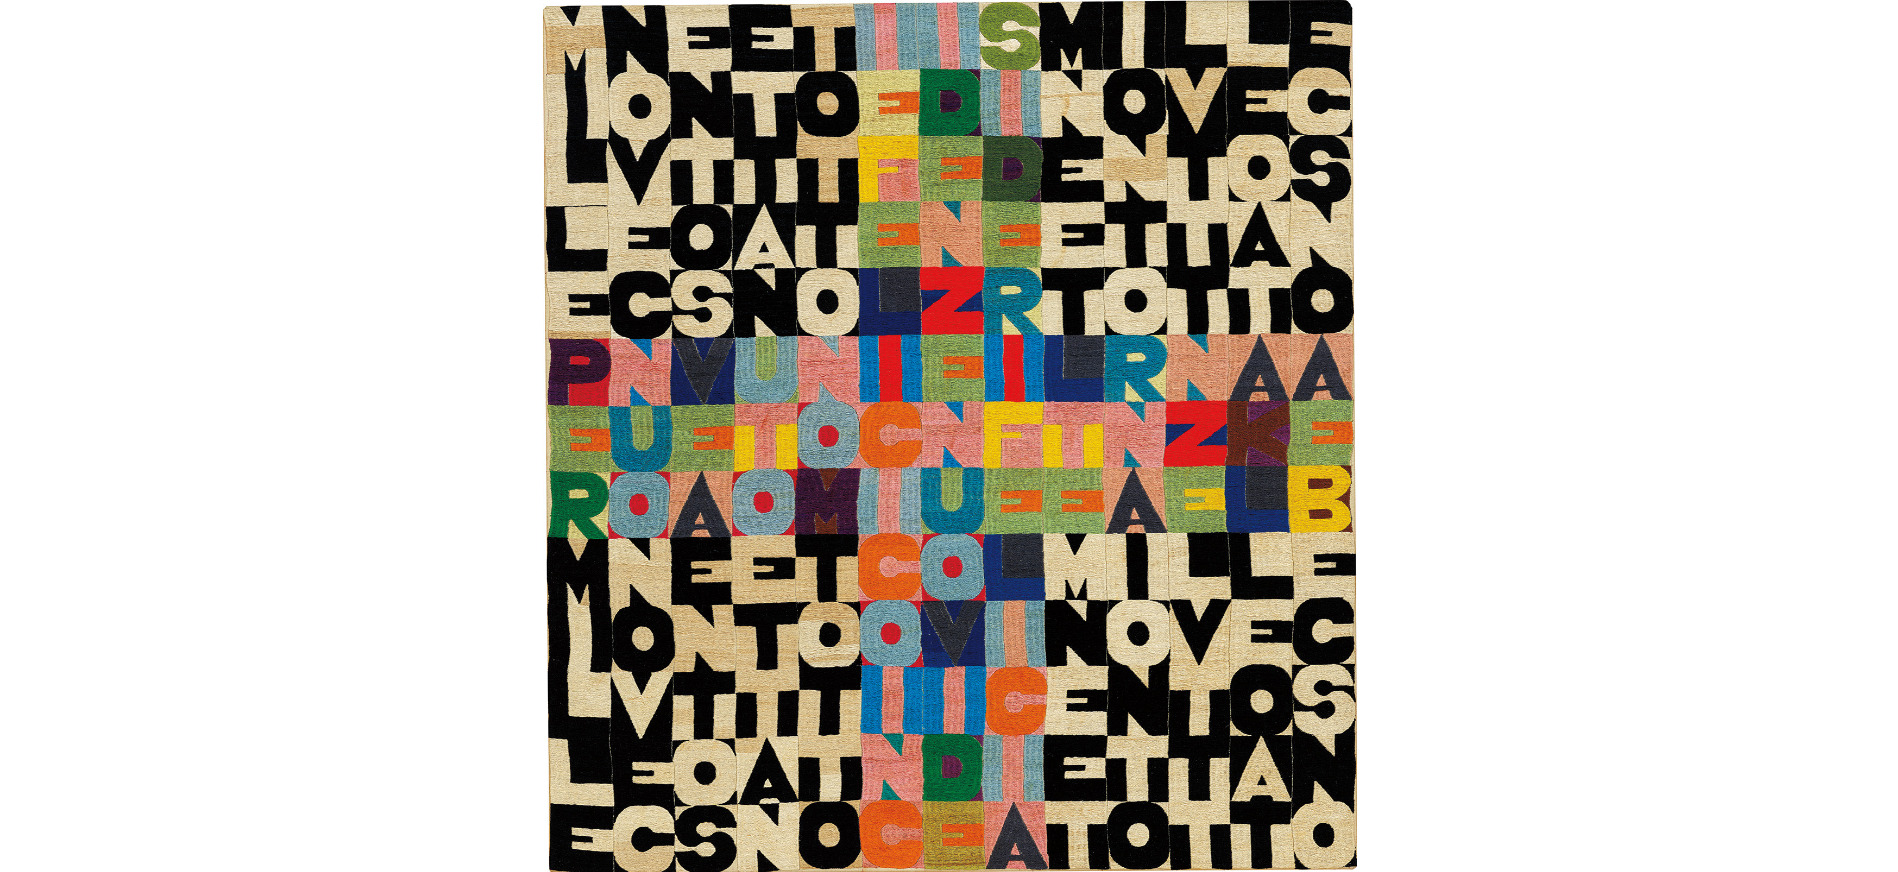 Alighiero Boetti, Senza Titolo (1977 per 1978) (1977) Courtesy of Phillips